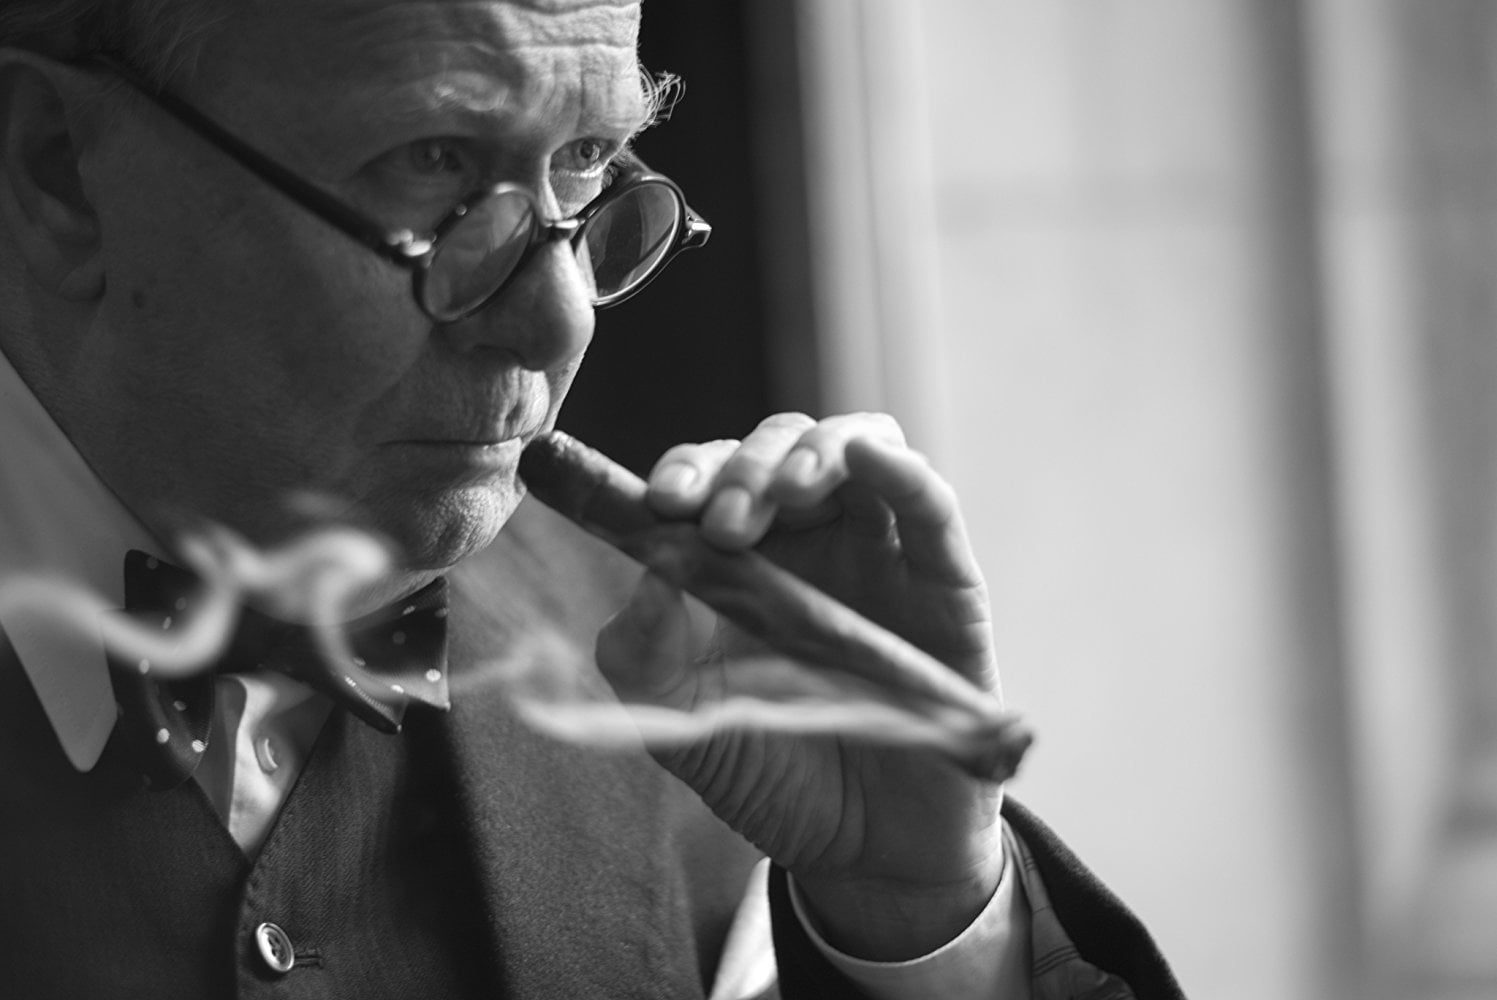 Gary Oldman underwent a dramatic transformation to take on the role of Winston Churchill, often spending multiple hours getting makeup and prosthetics applied.  (Photo courtesy of IMDB)